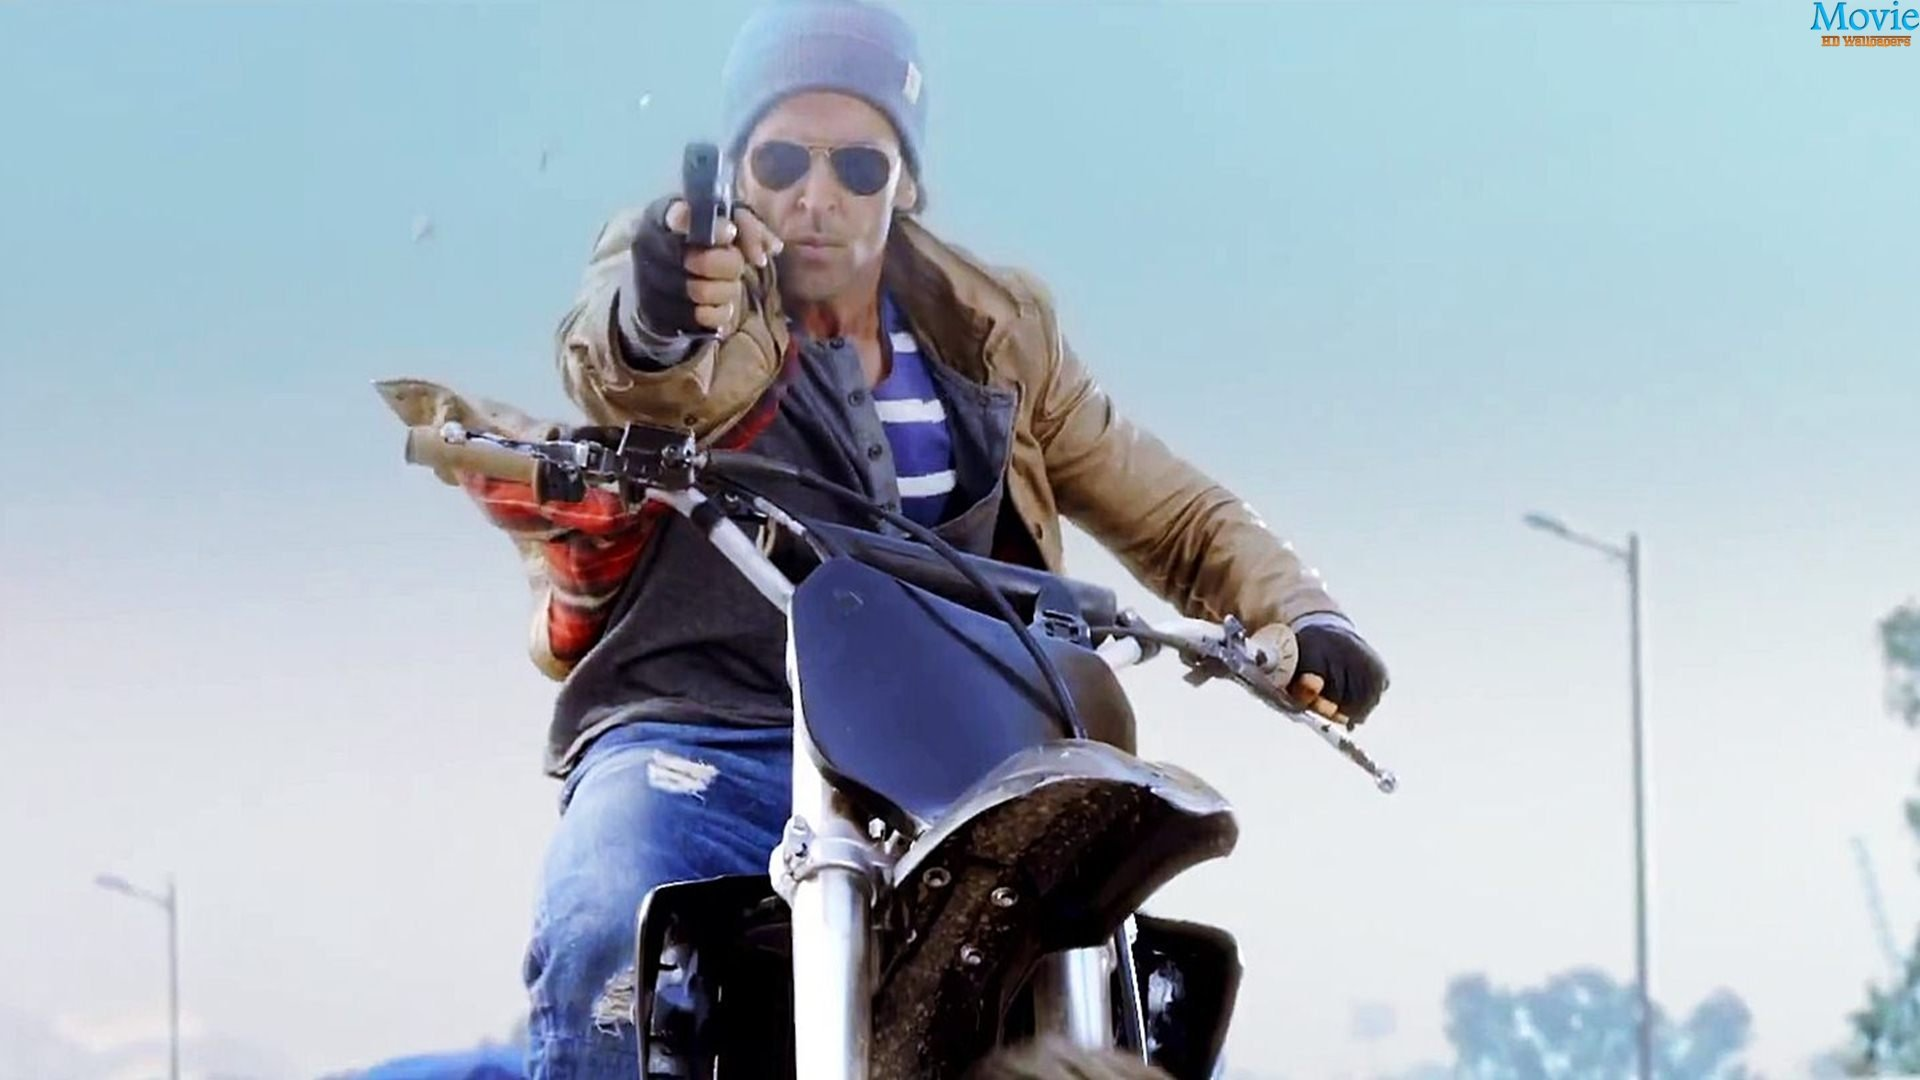 bang bang 2014 movie - movie hd wallpapers